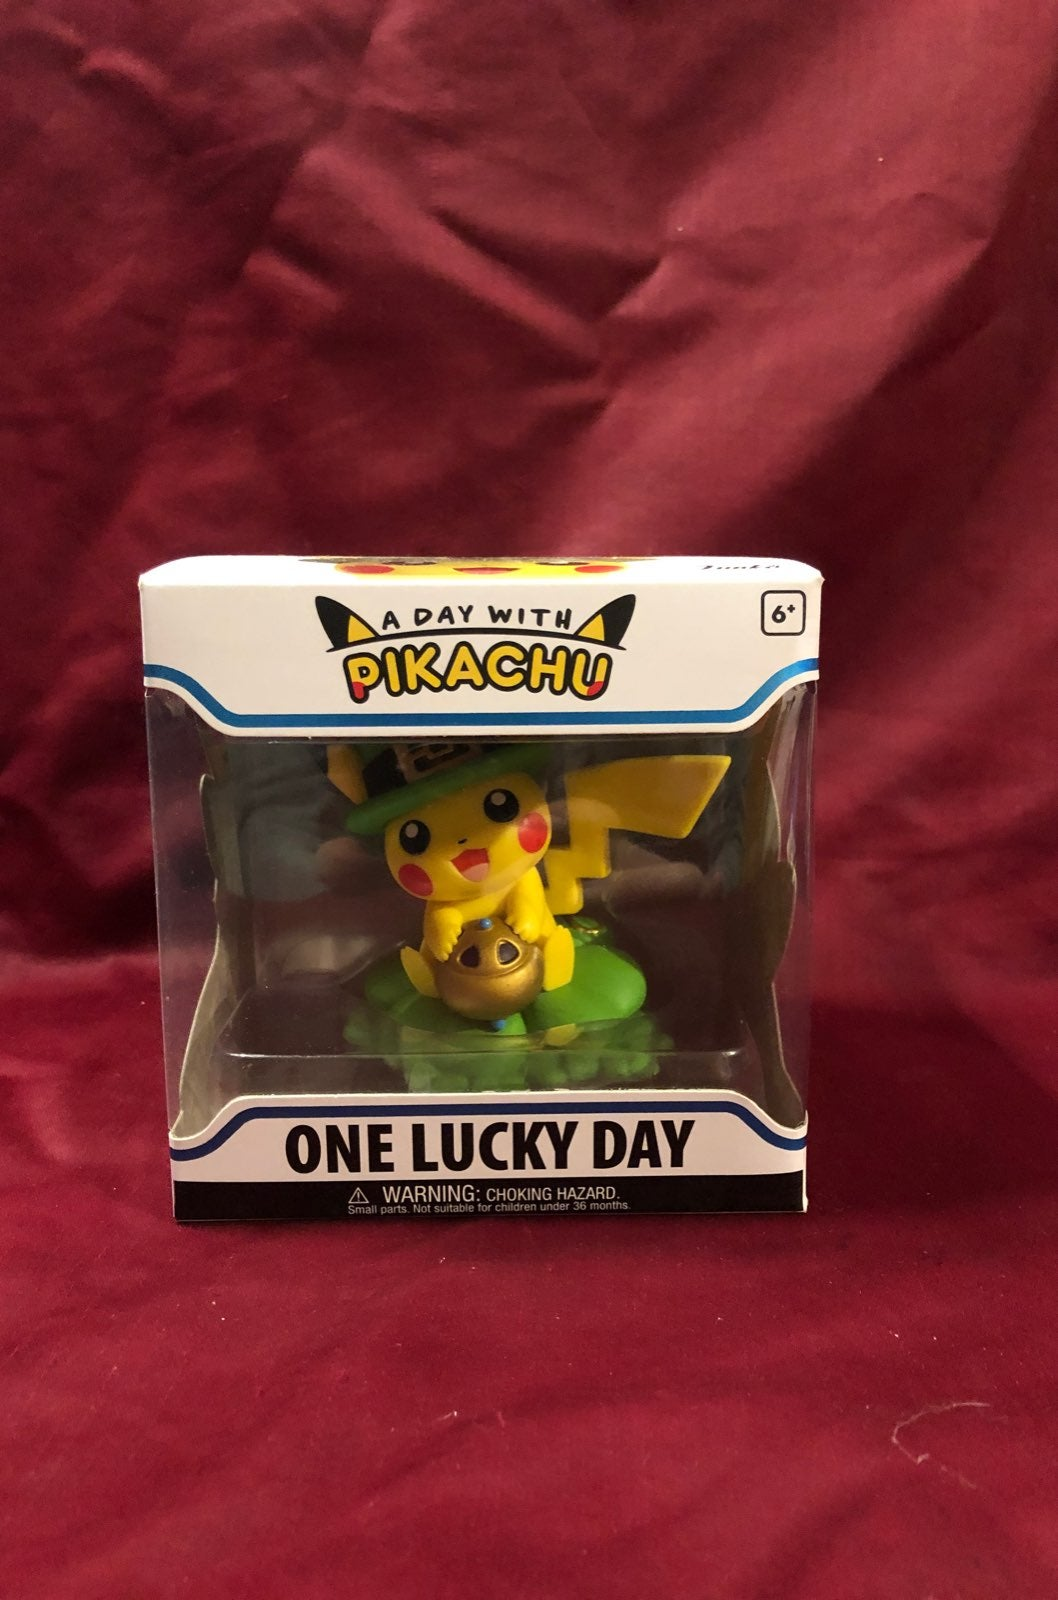 A Day With Pikachu - One Lucky Day